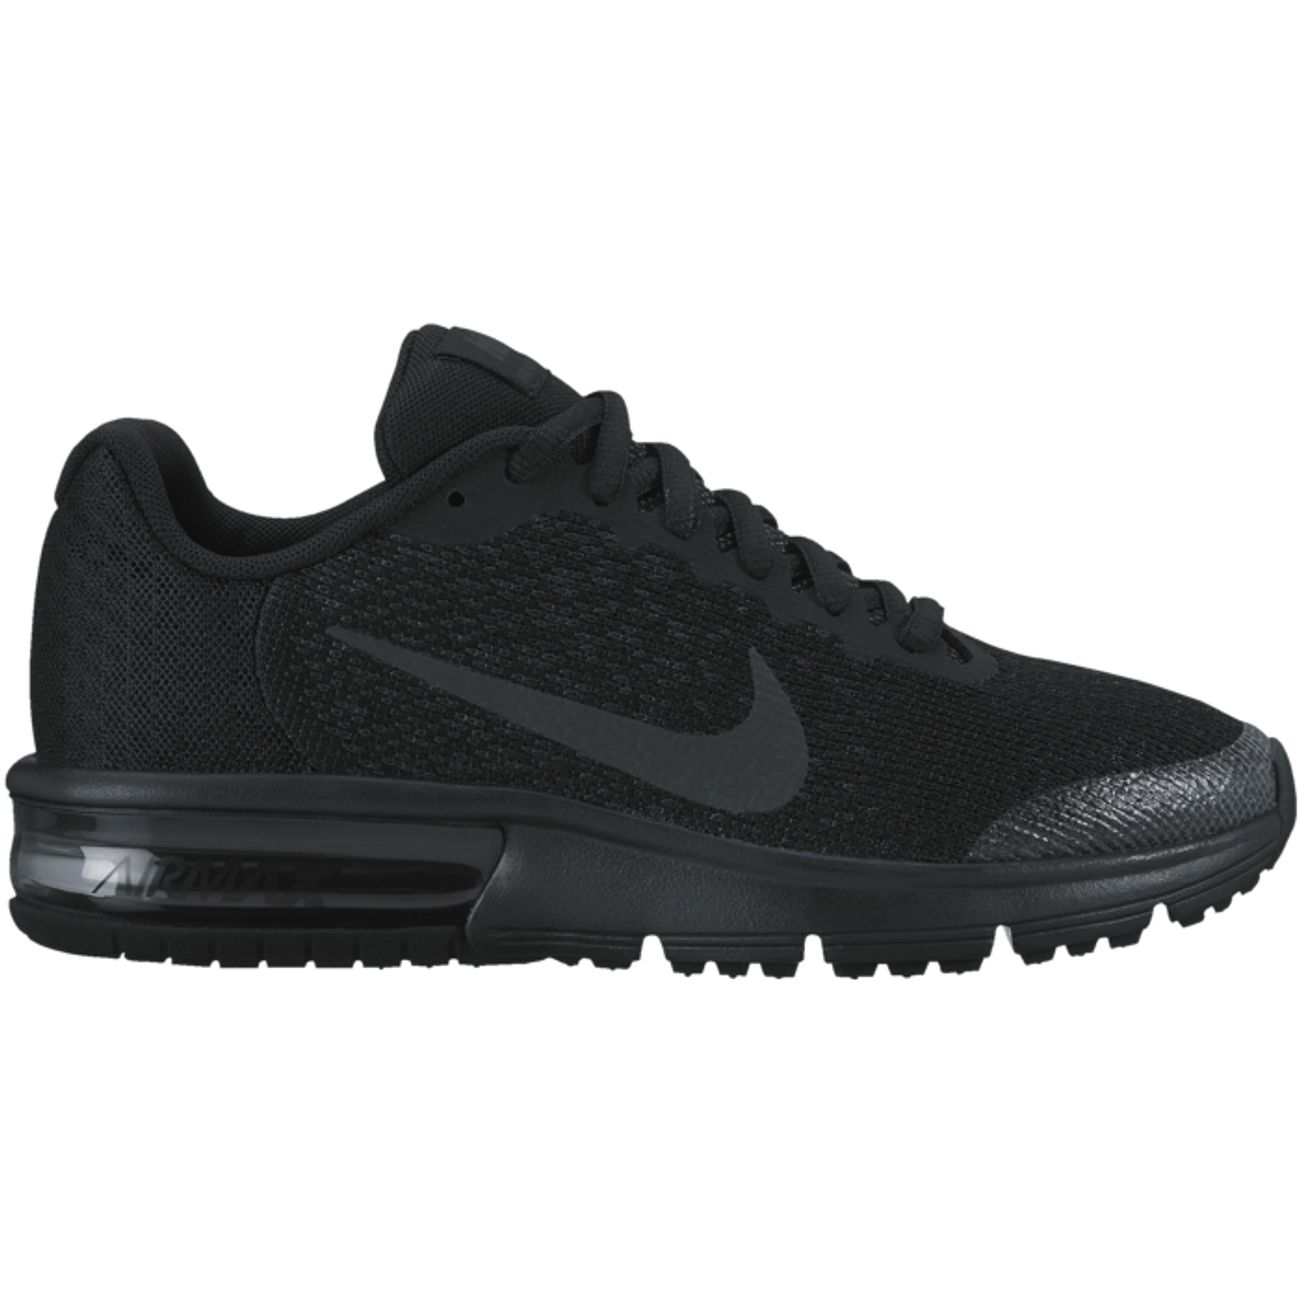 brand new 02ec6 90f3c CHAUSSURES BASSES running enfant NIKE AIR MAX SEQUENT 2